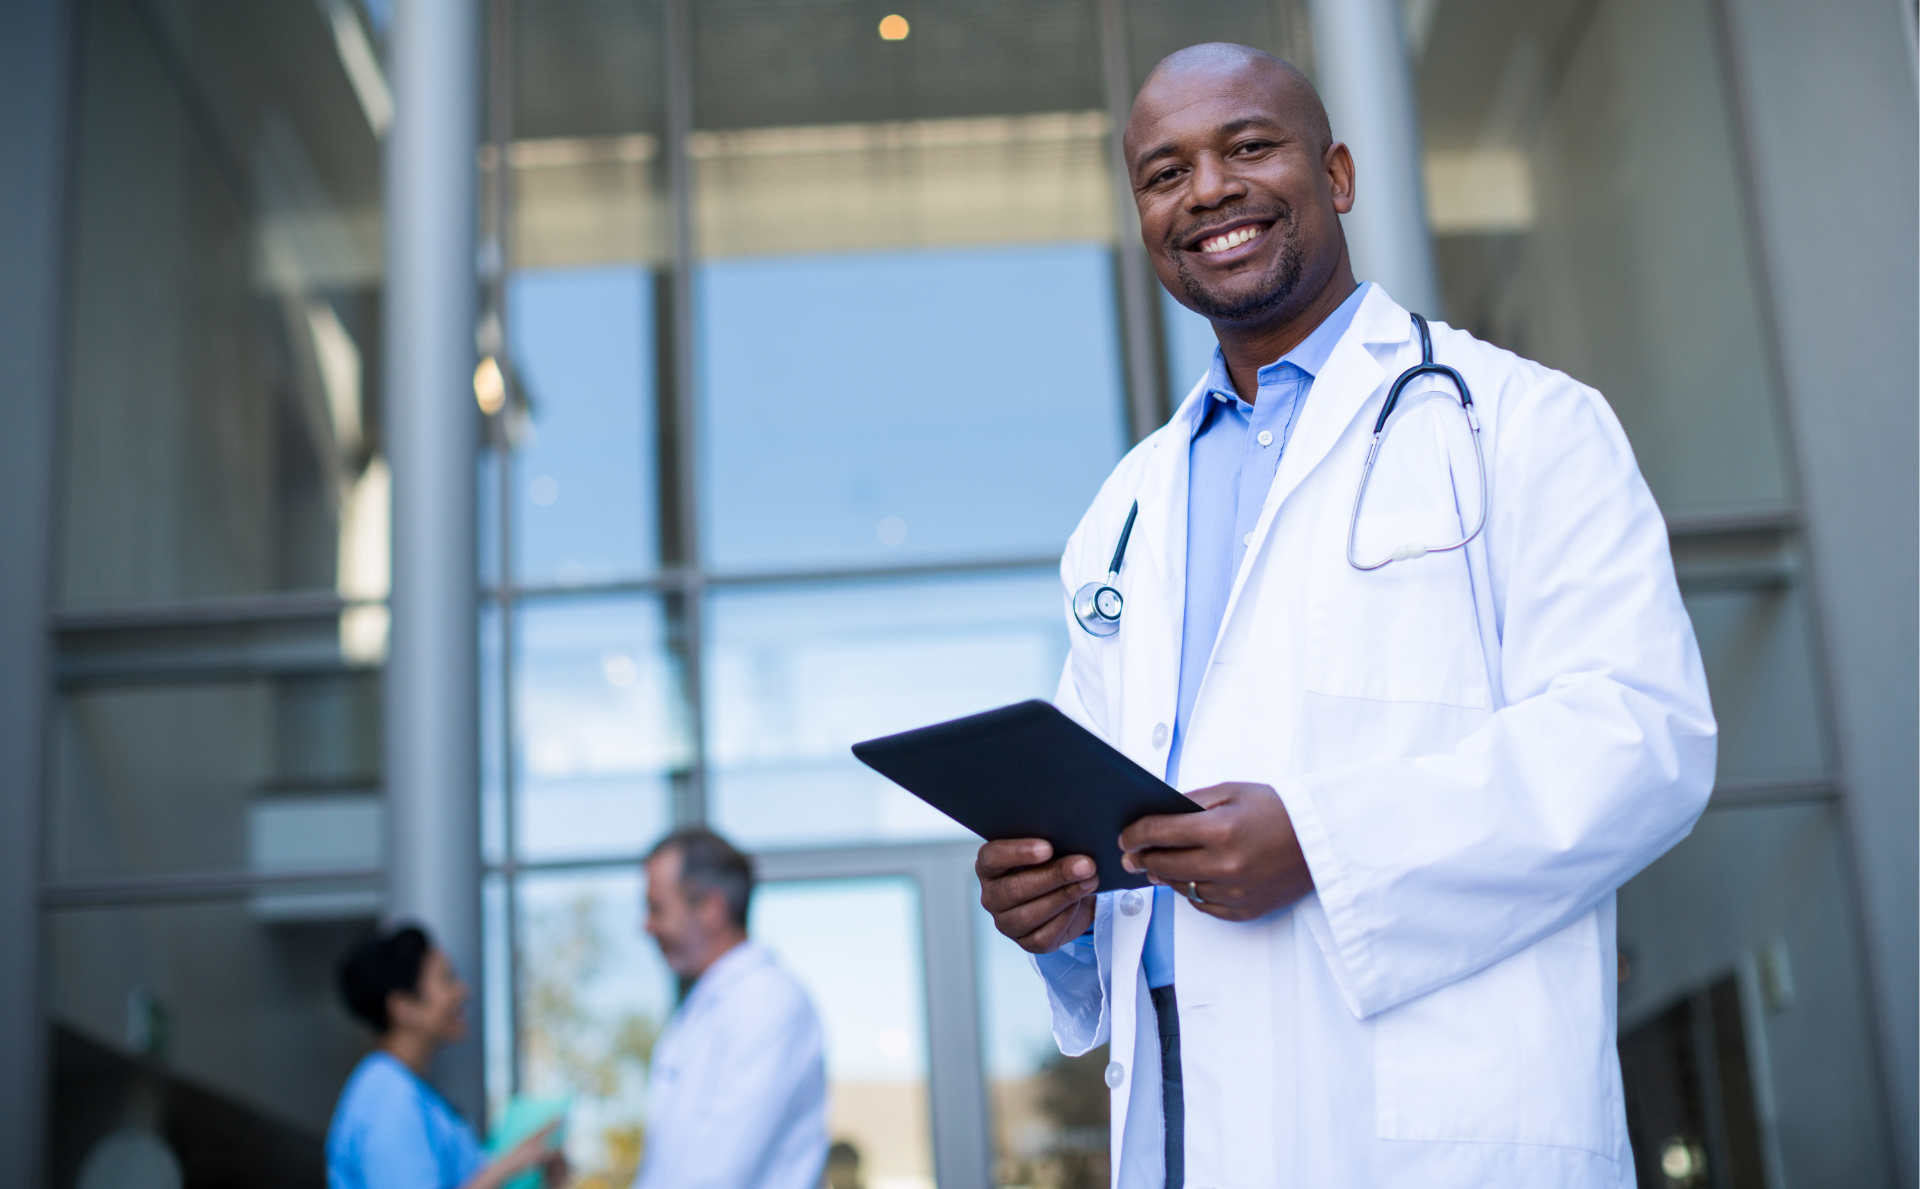 Doctor standing in a lab coat in front of a hospital smiling and holding a clip board